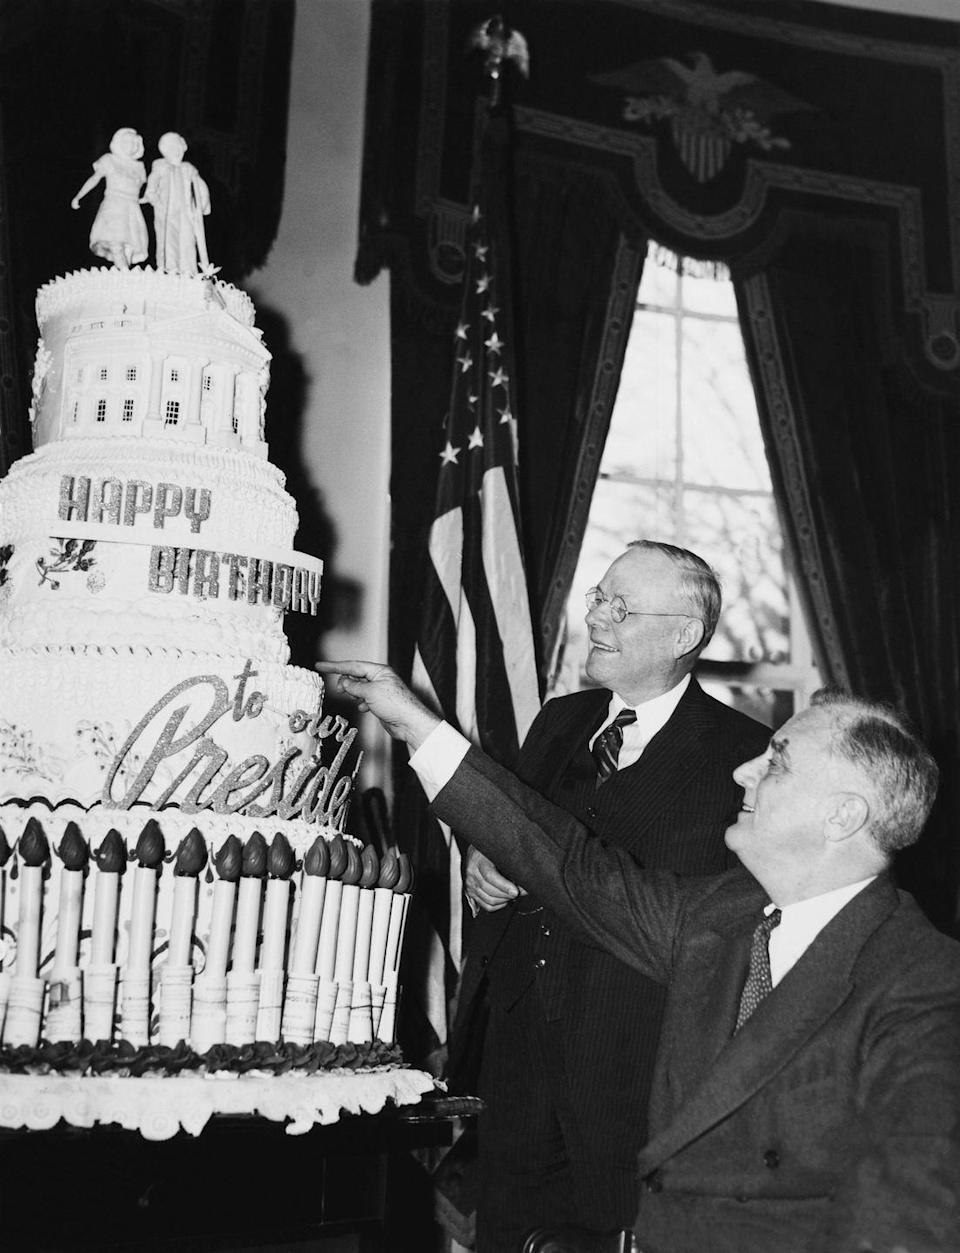 "<p>On his 59th birthday, Franklin D. Roosevelt received a <a href=""http://mentalfloss.com/article/22413/white-house-gift-guide-13-unique-presidential-gifts"" rel=""nofollow noopener"" target=""_blank"" data-ylk=""slk:5-foot-tall cake that weighed 300 pounds"" class=""link rapid-noclick-resp"">5-foot-tall cake that weighed 300 pounds</a>. It was a gift from the Bakery and Confectionary Workers International Union of America. </p>"